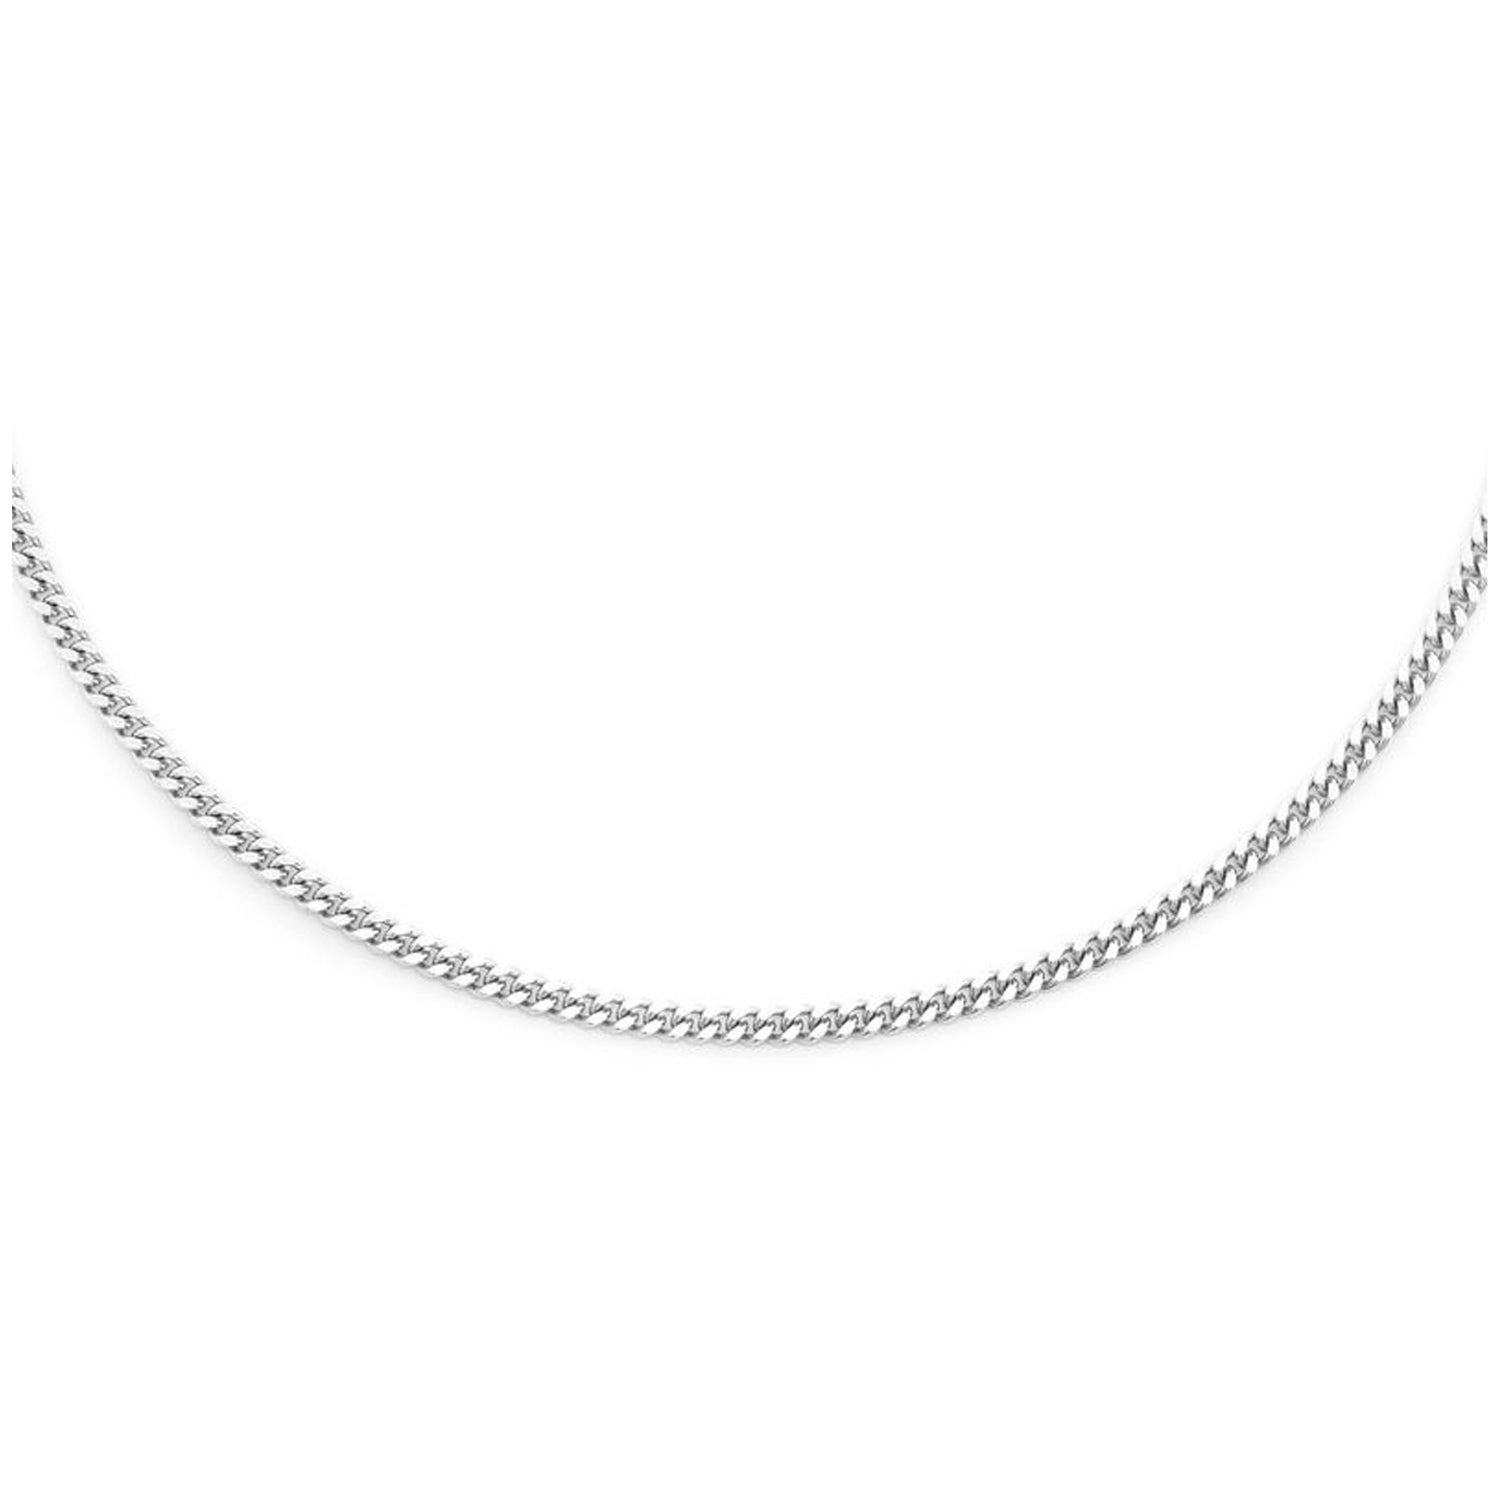 1.5mm Miami Cuban Chain